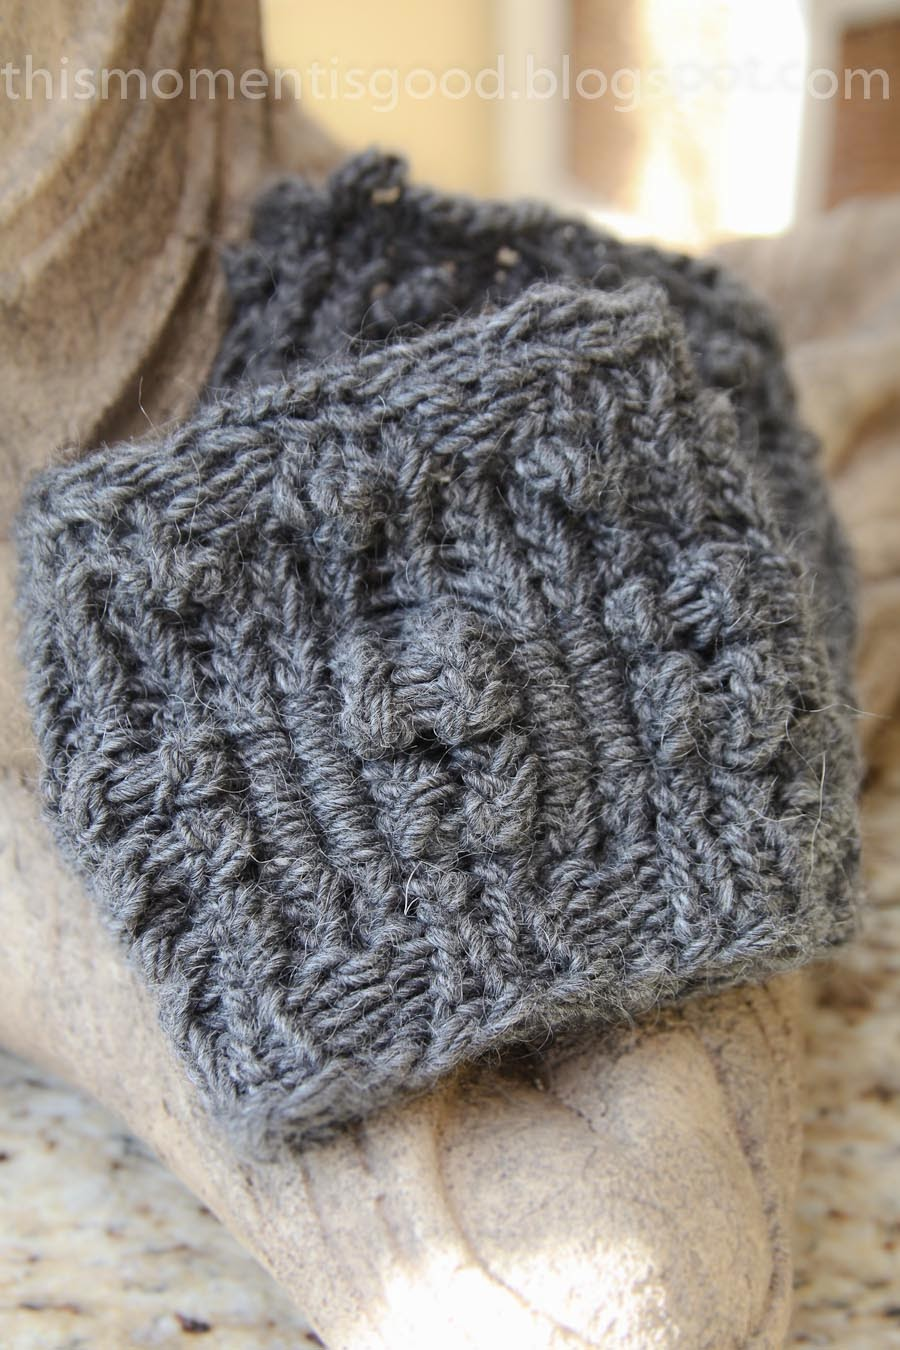 LOOM KNIT TEXTURED BOOT TOPPERS/CUFFS   Loom Knitting by This Moment ...